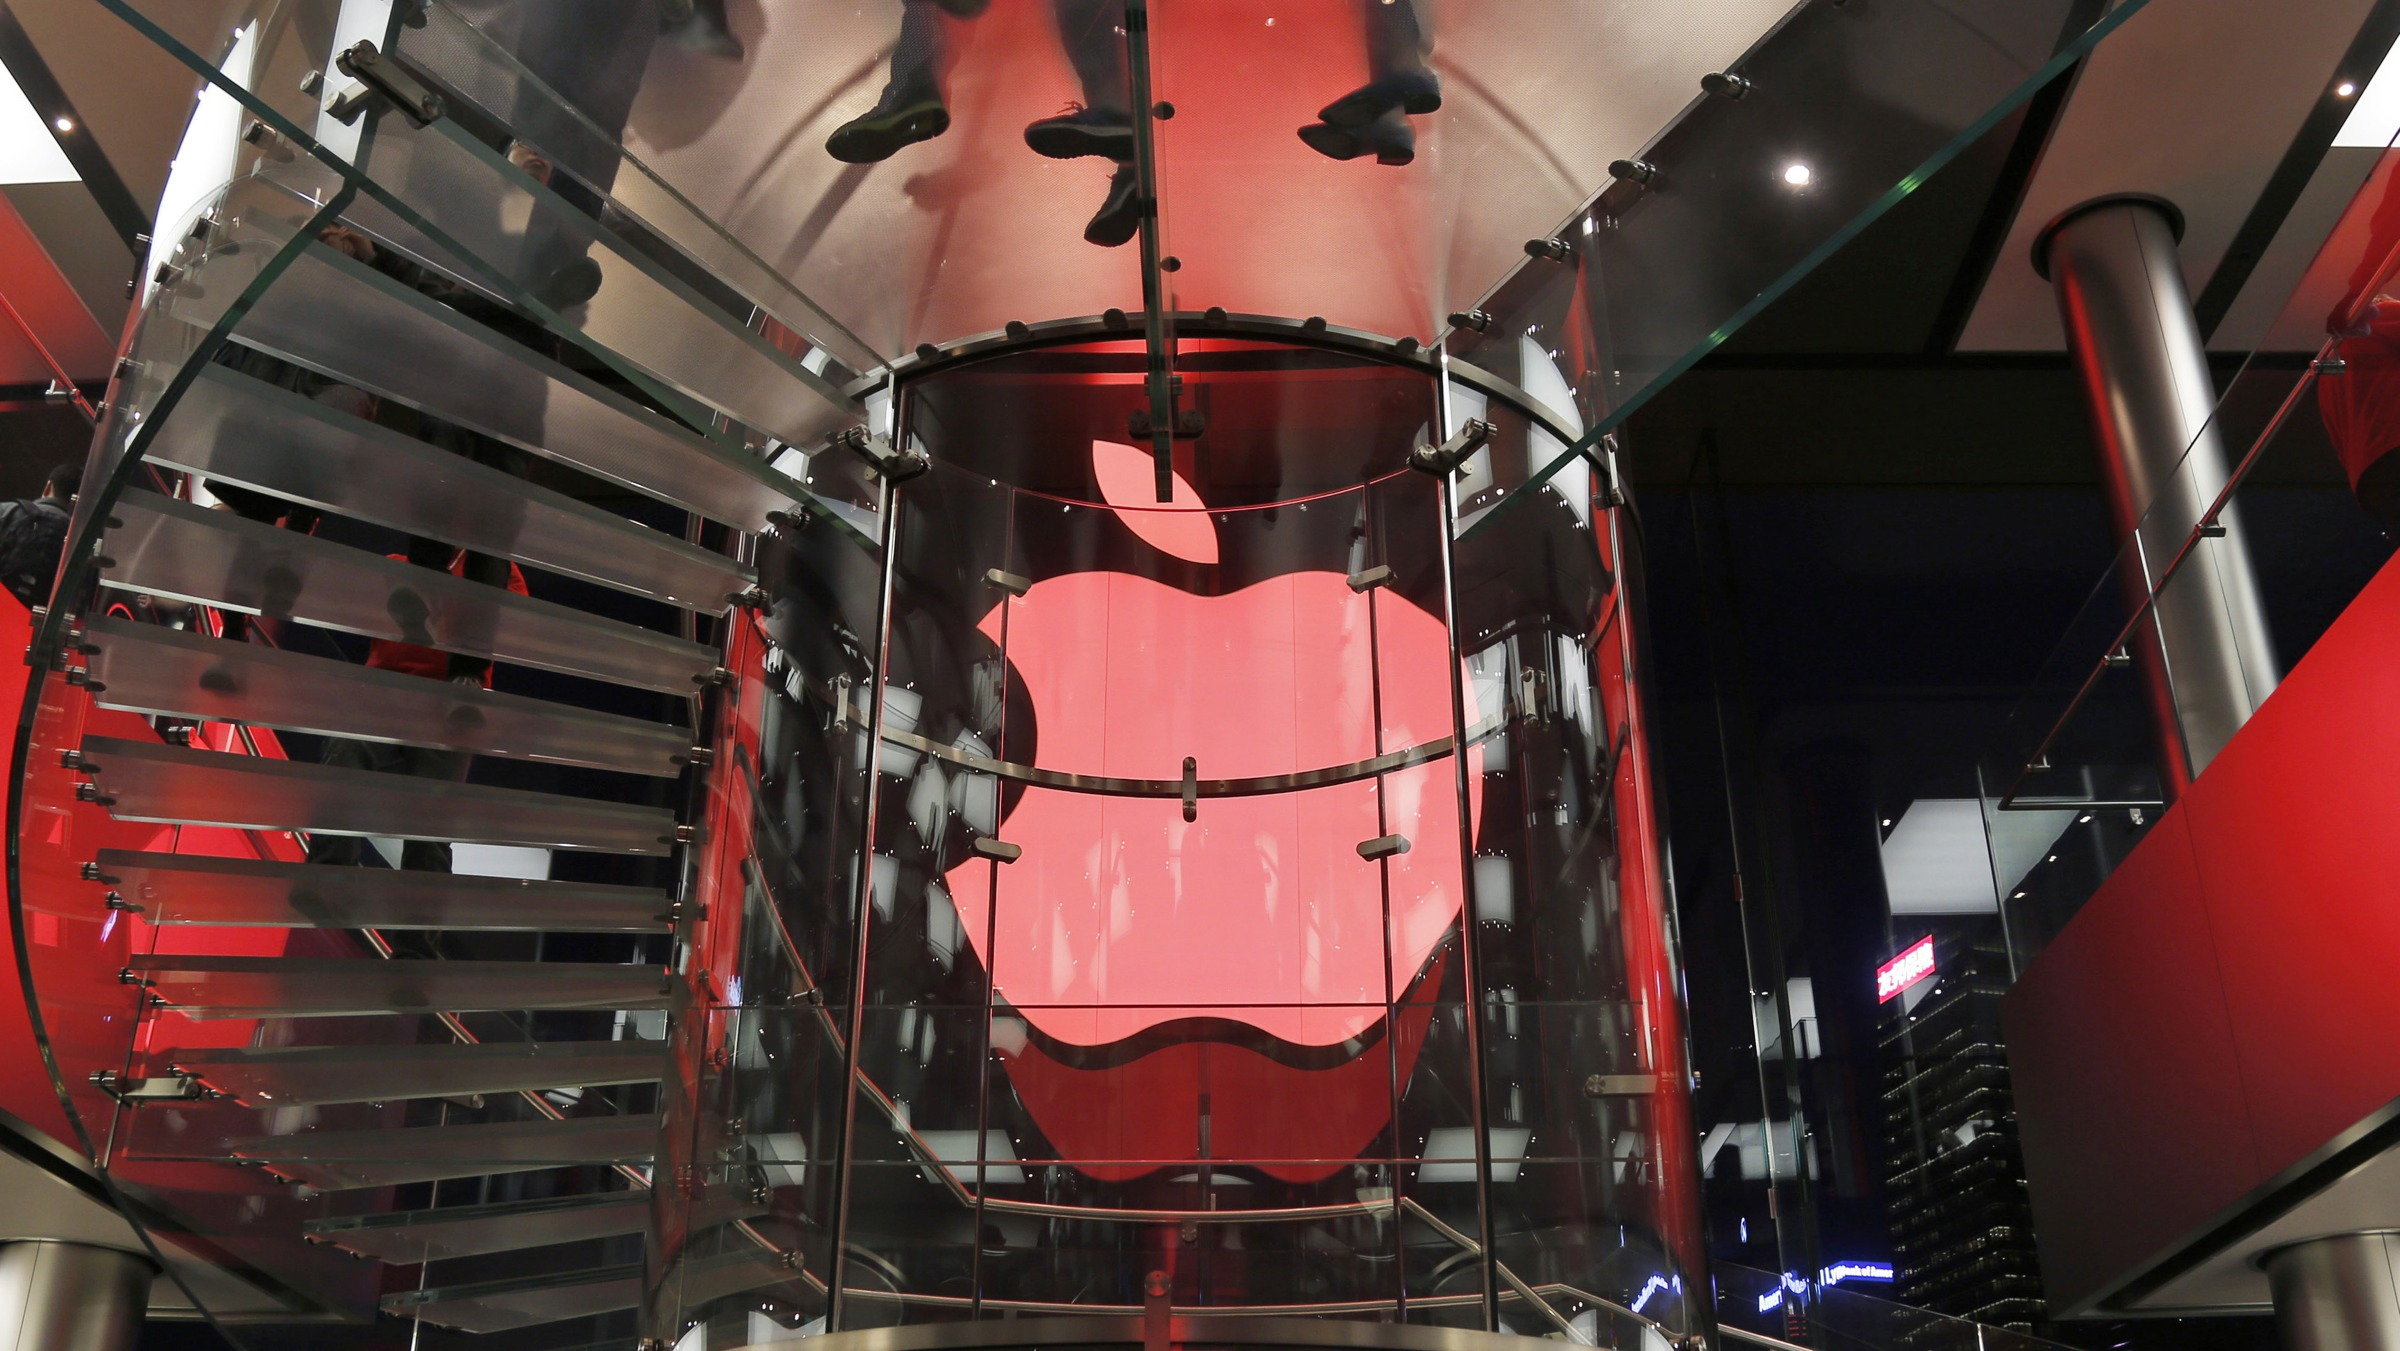 Apple store changes its logo color to red as supporting for those living with HIV during the World AIDS Day Sunday, Dec. 1, 2013. (AP Photo/Kin Cheung)